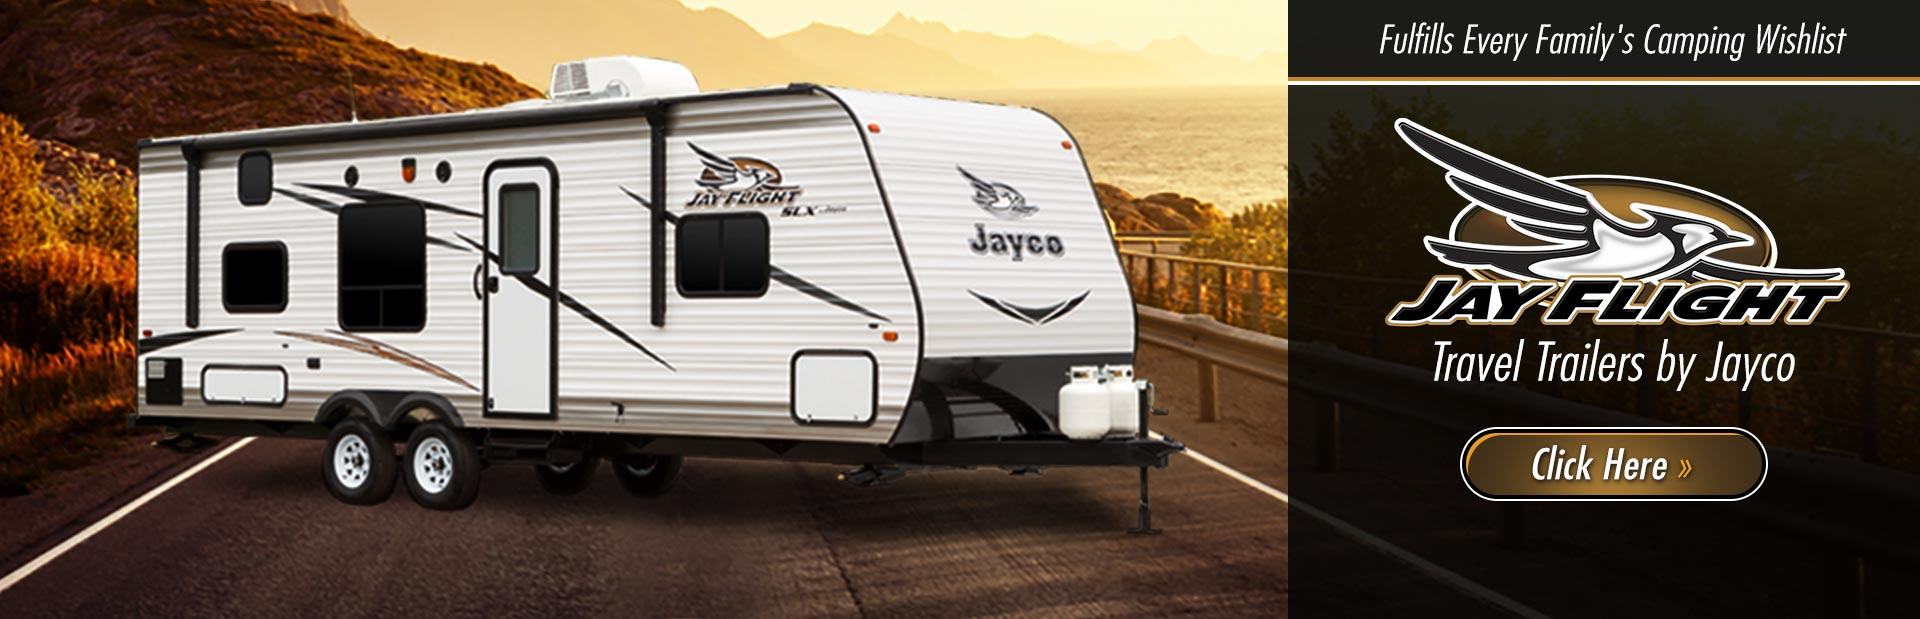 Jay Flight Travel Trailers by Jayco: Click here to view the models.